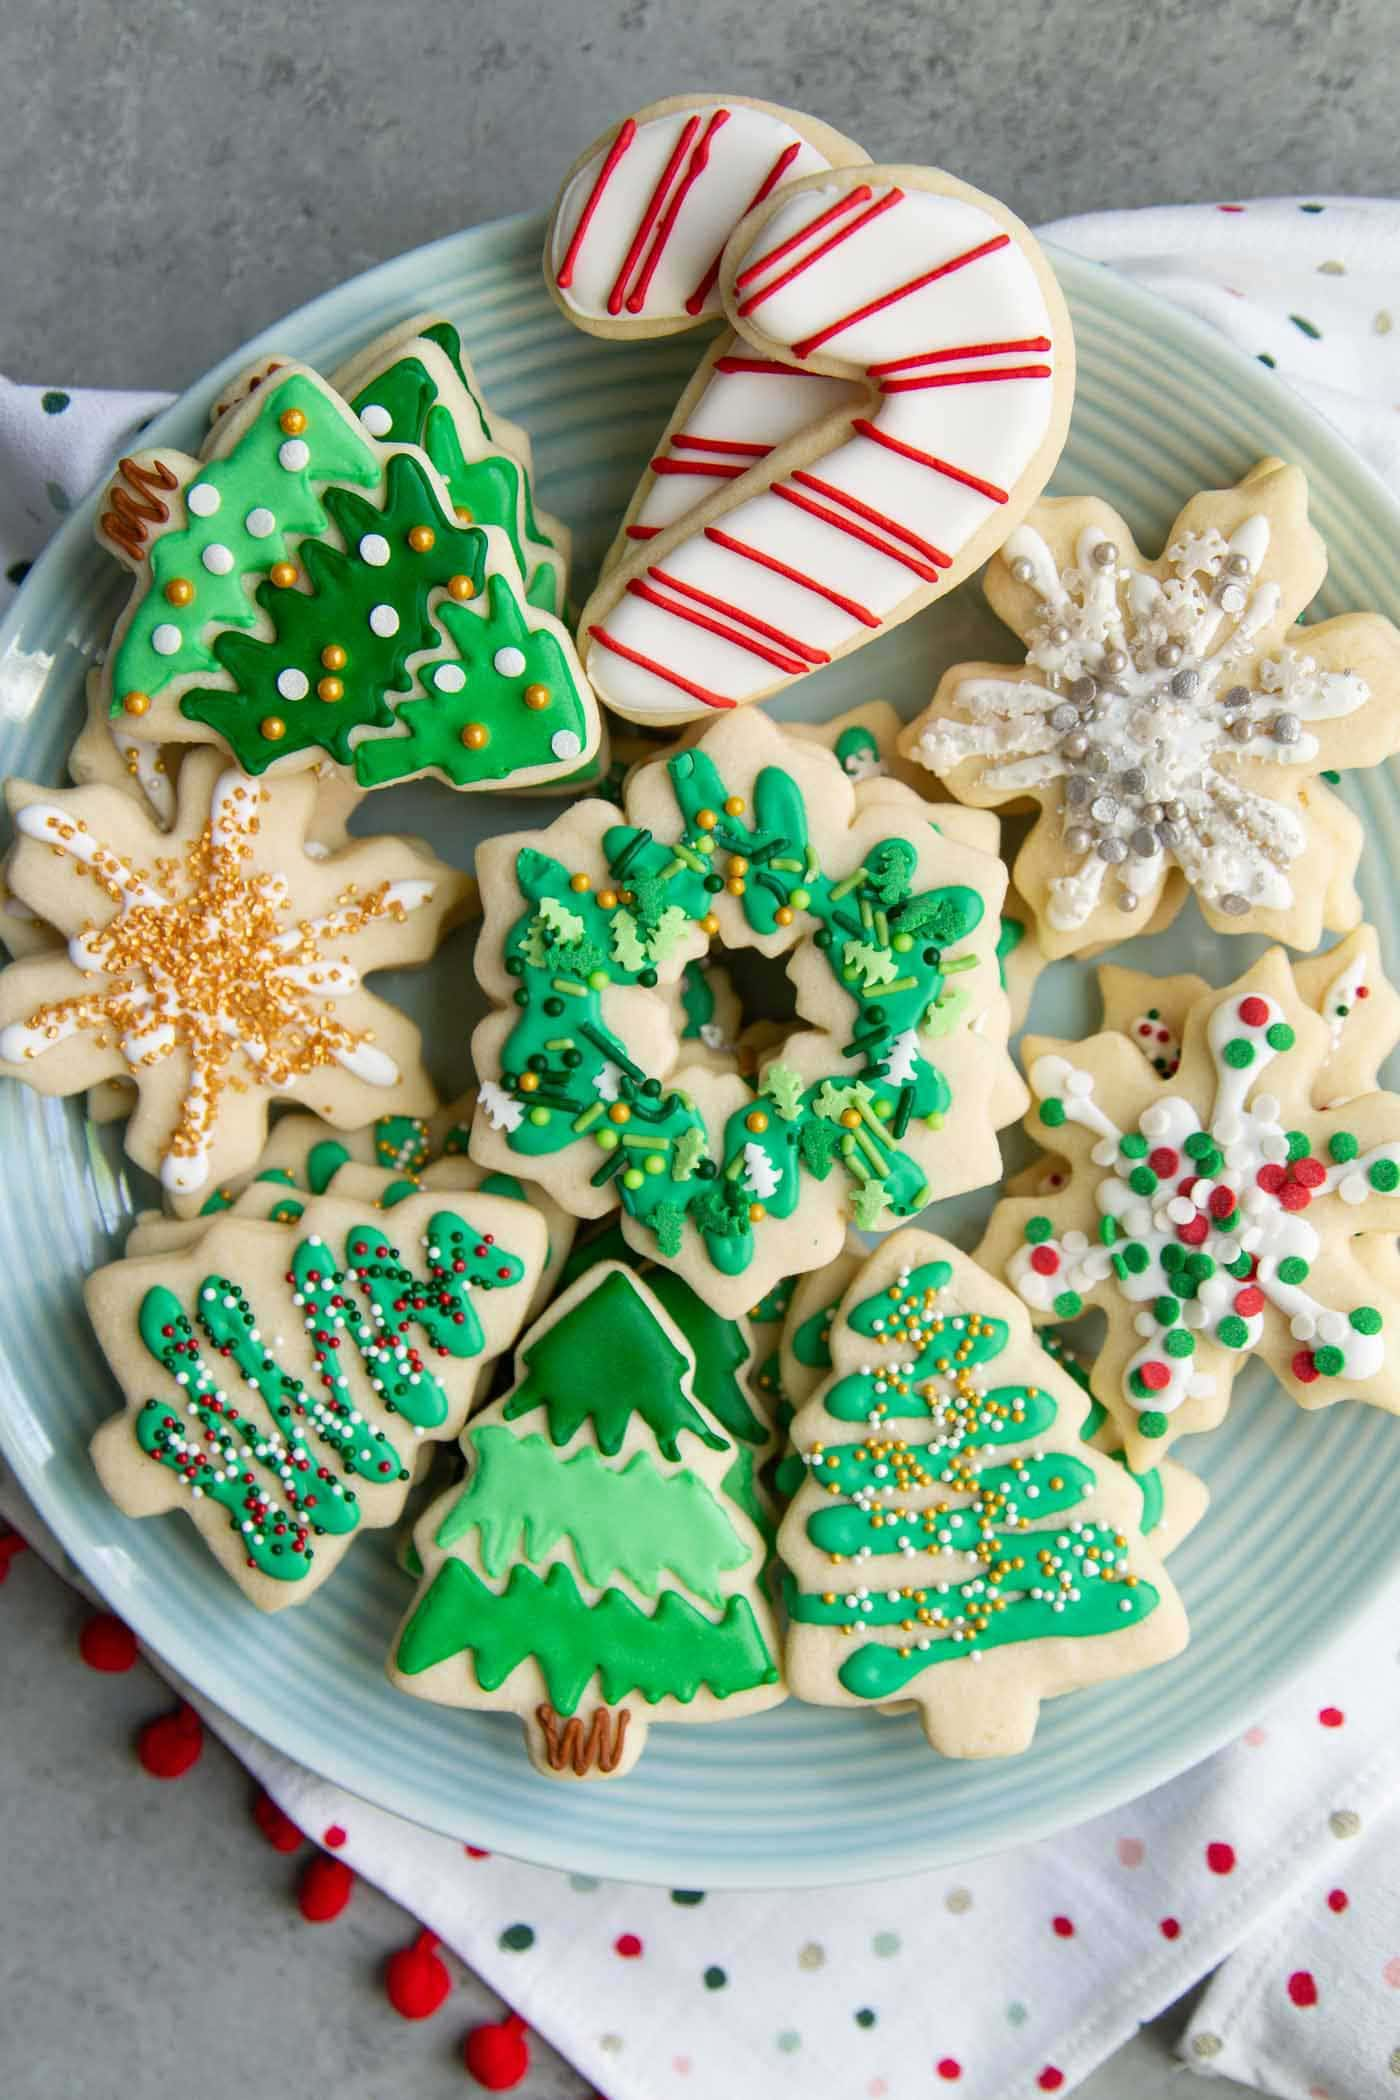 Assorted decorated holiday sugar cookies